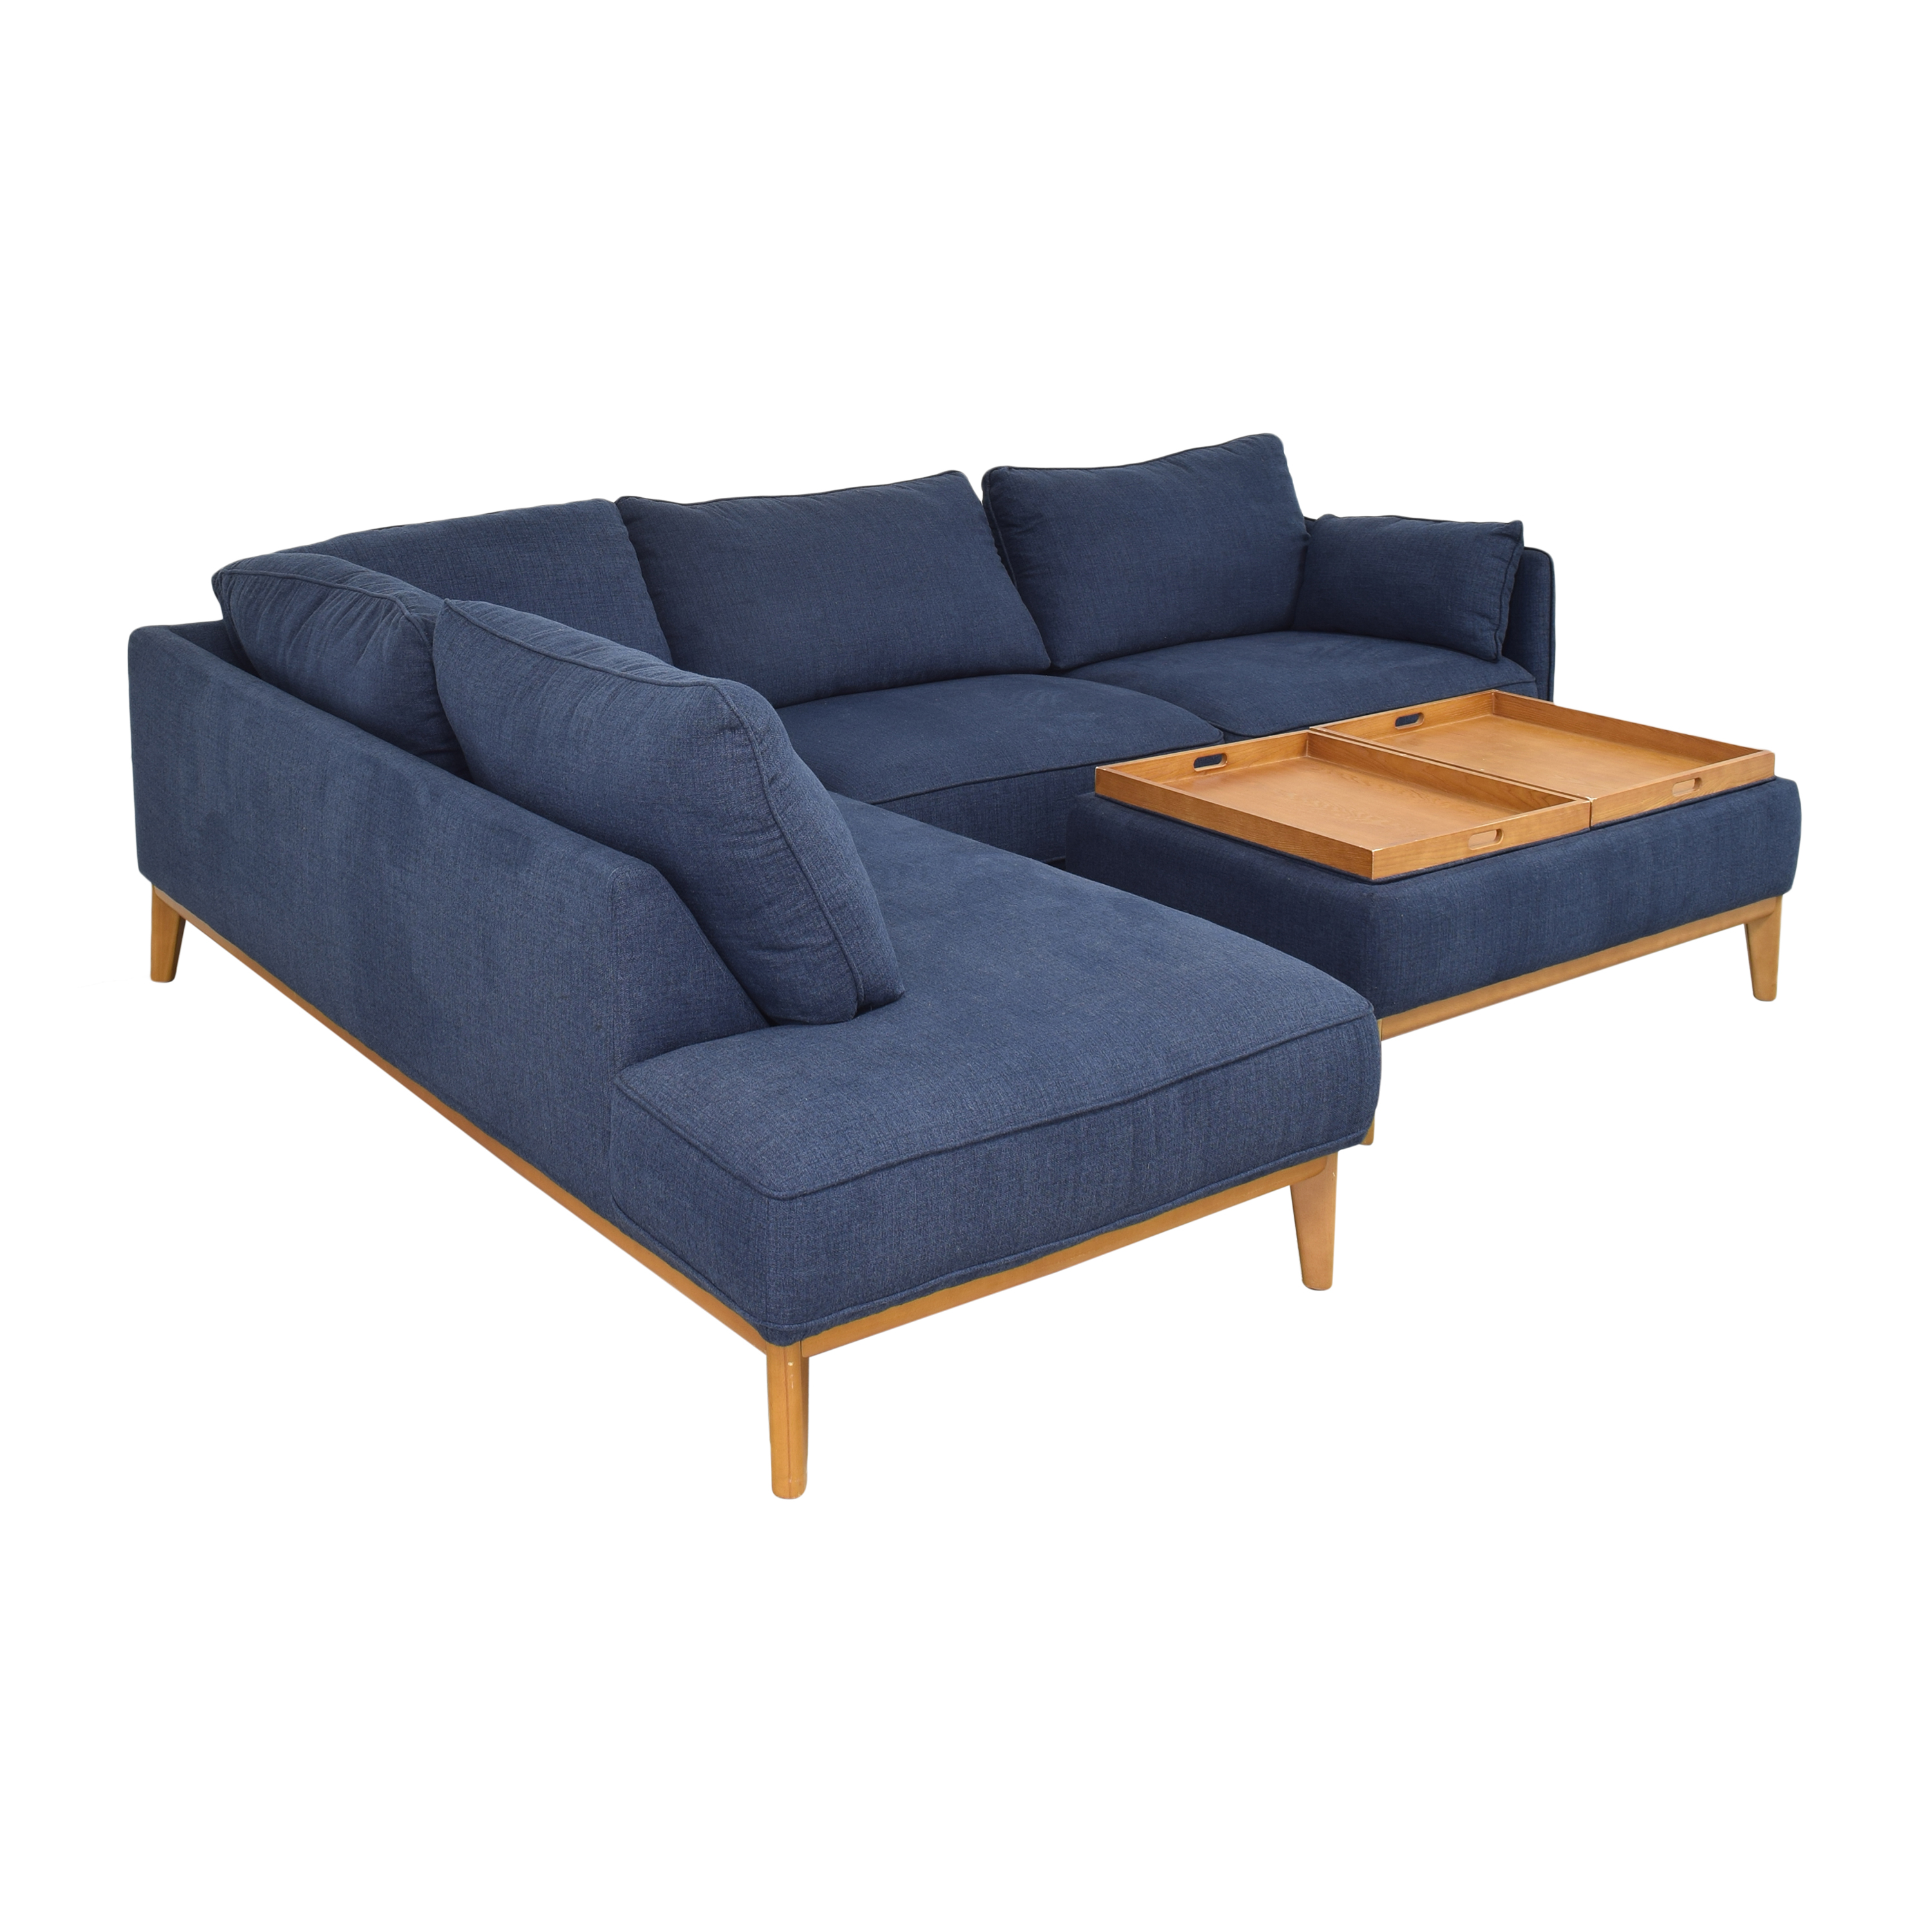 Macy's Macy's Jollene Sectional With Storage Cocktail Ottoman used